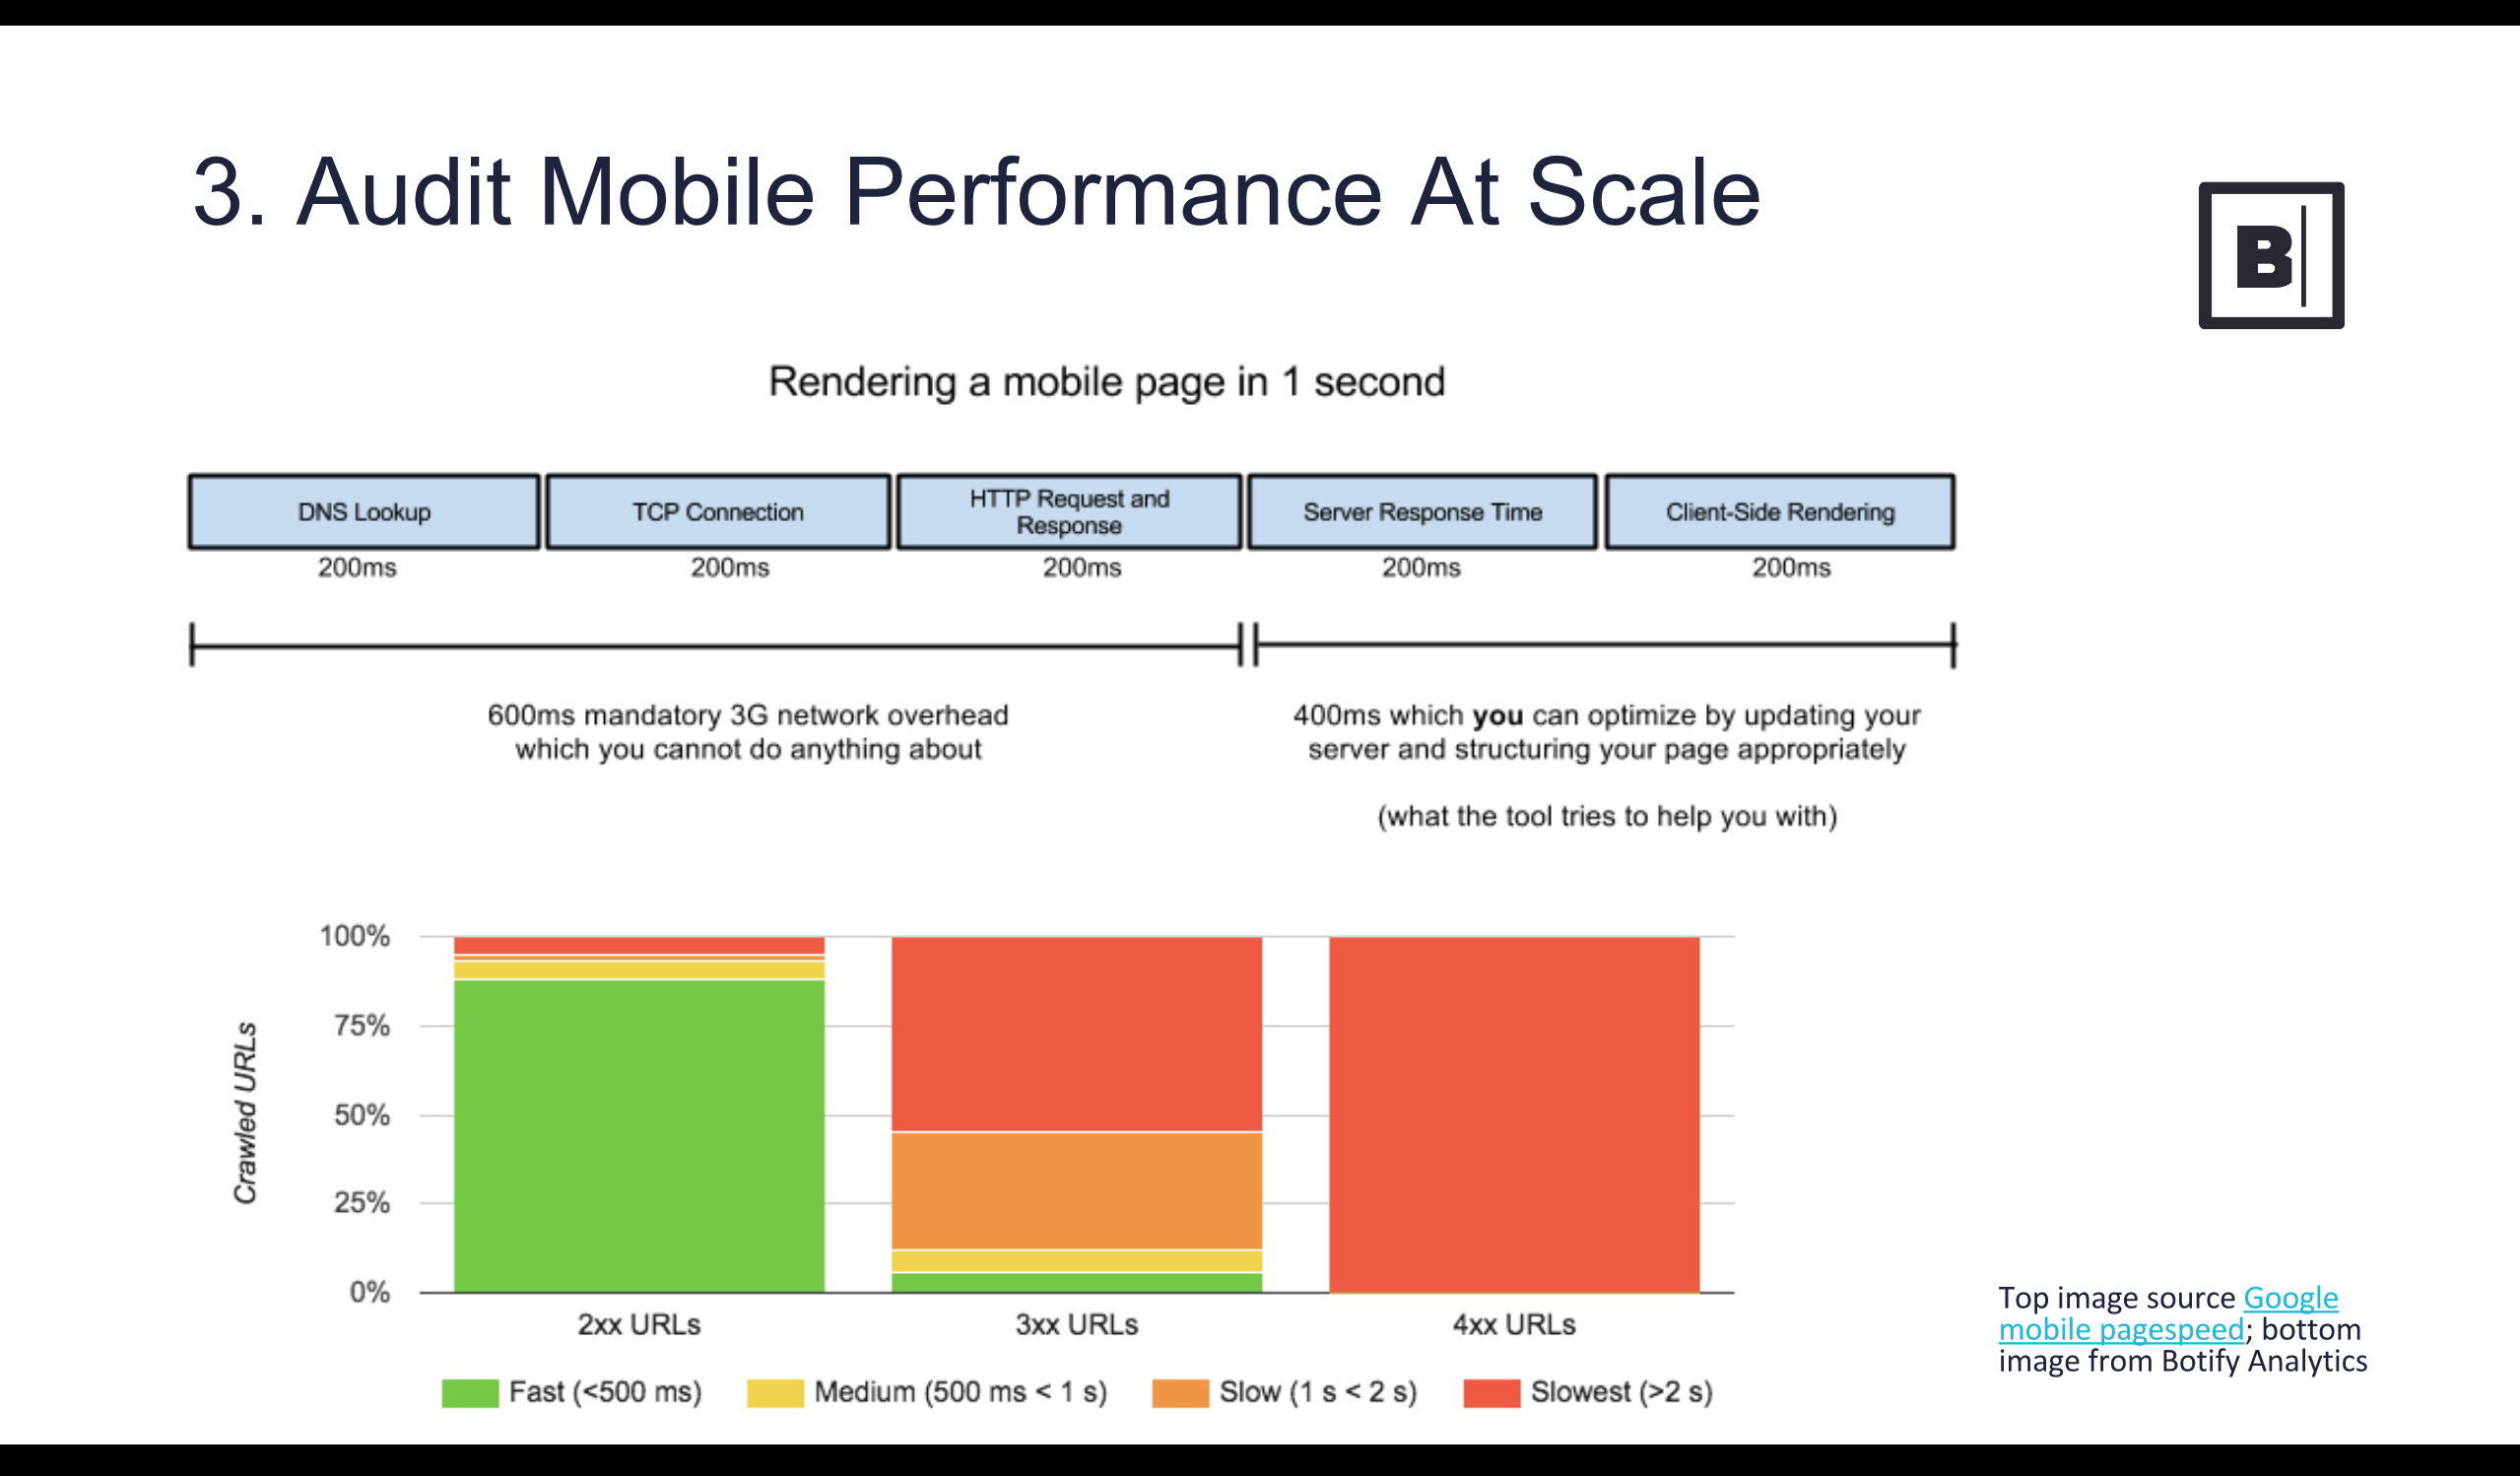 Audit Mobile Performance at Scale